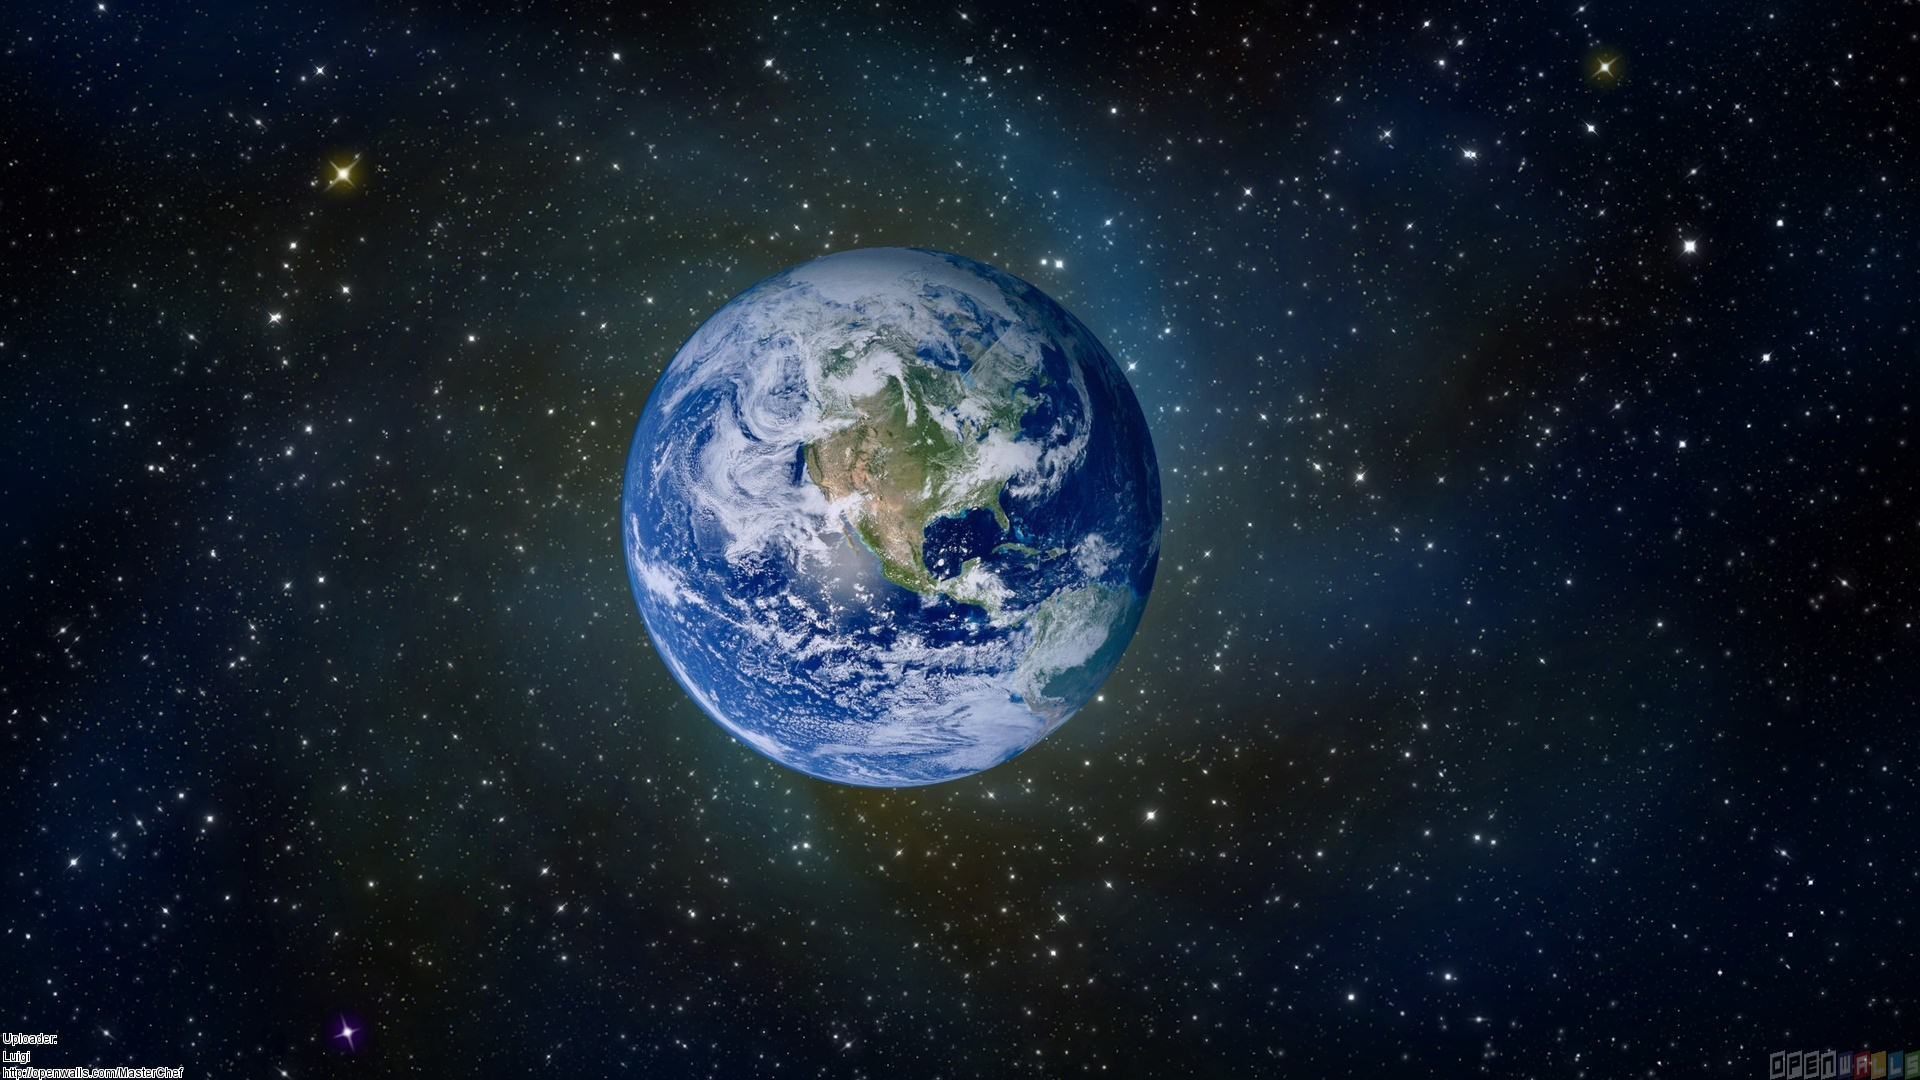 Cool Backgrounds: Amazing Earth From Space Images Collection